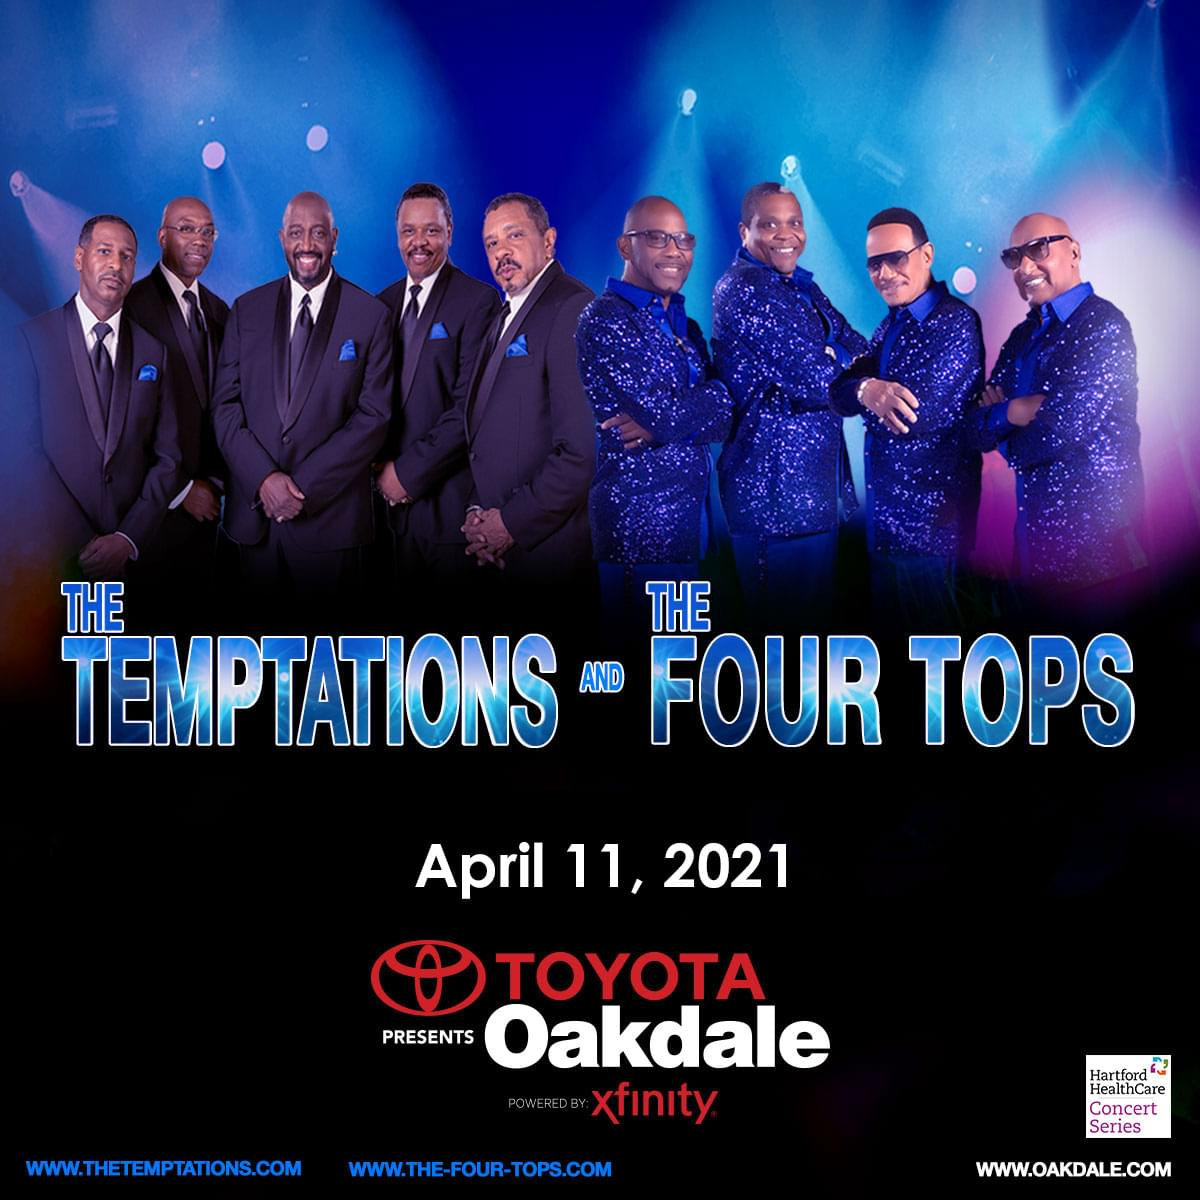 Enter to win tickets to The Temptations & The Four Tops A Night of Solid Gold Hits